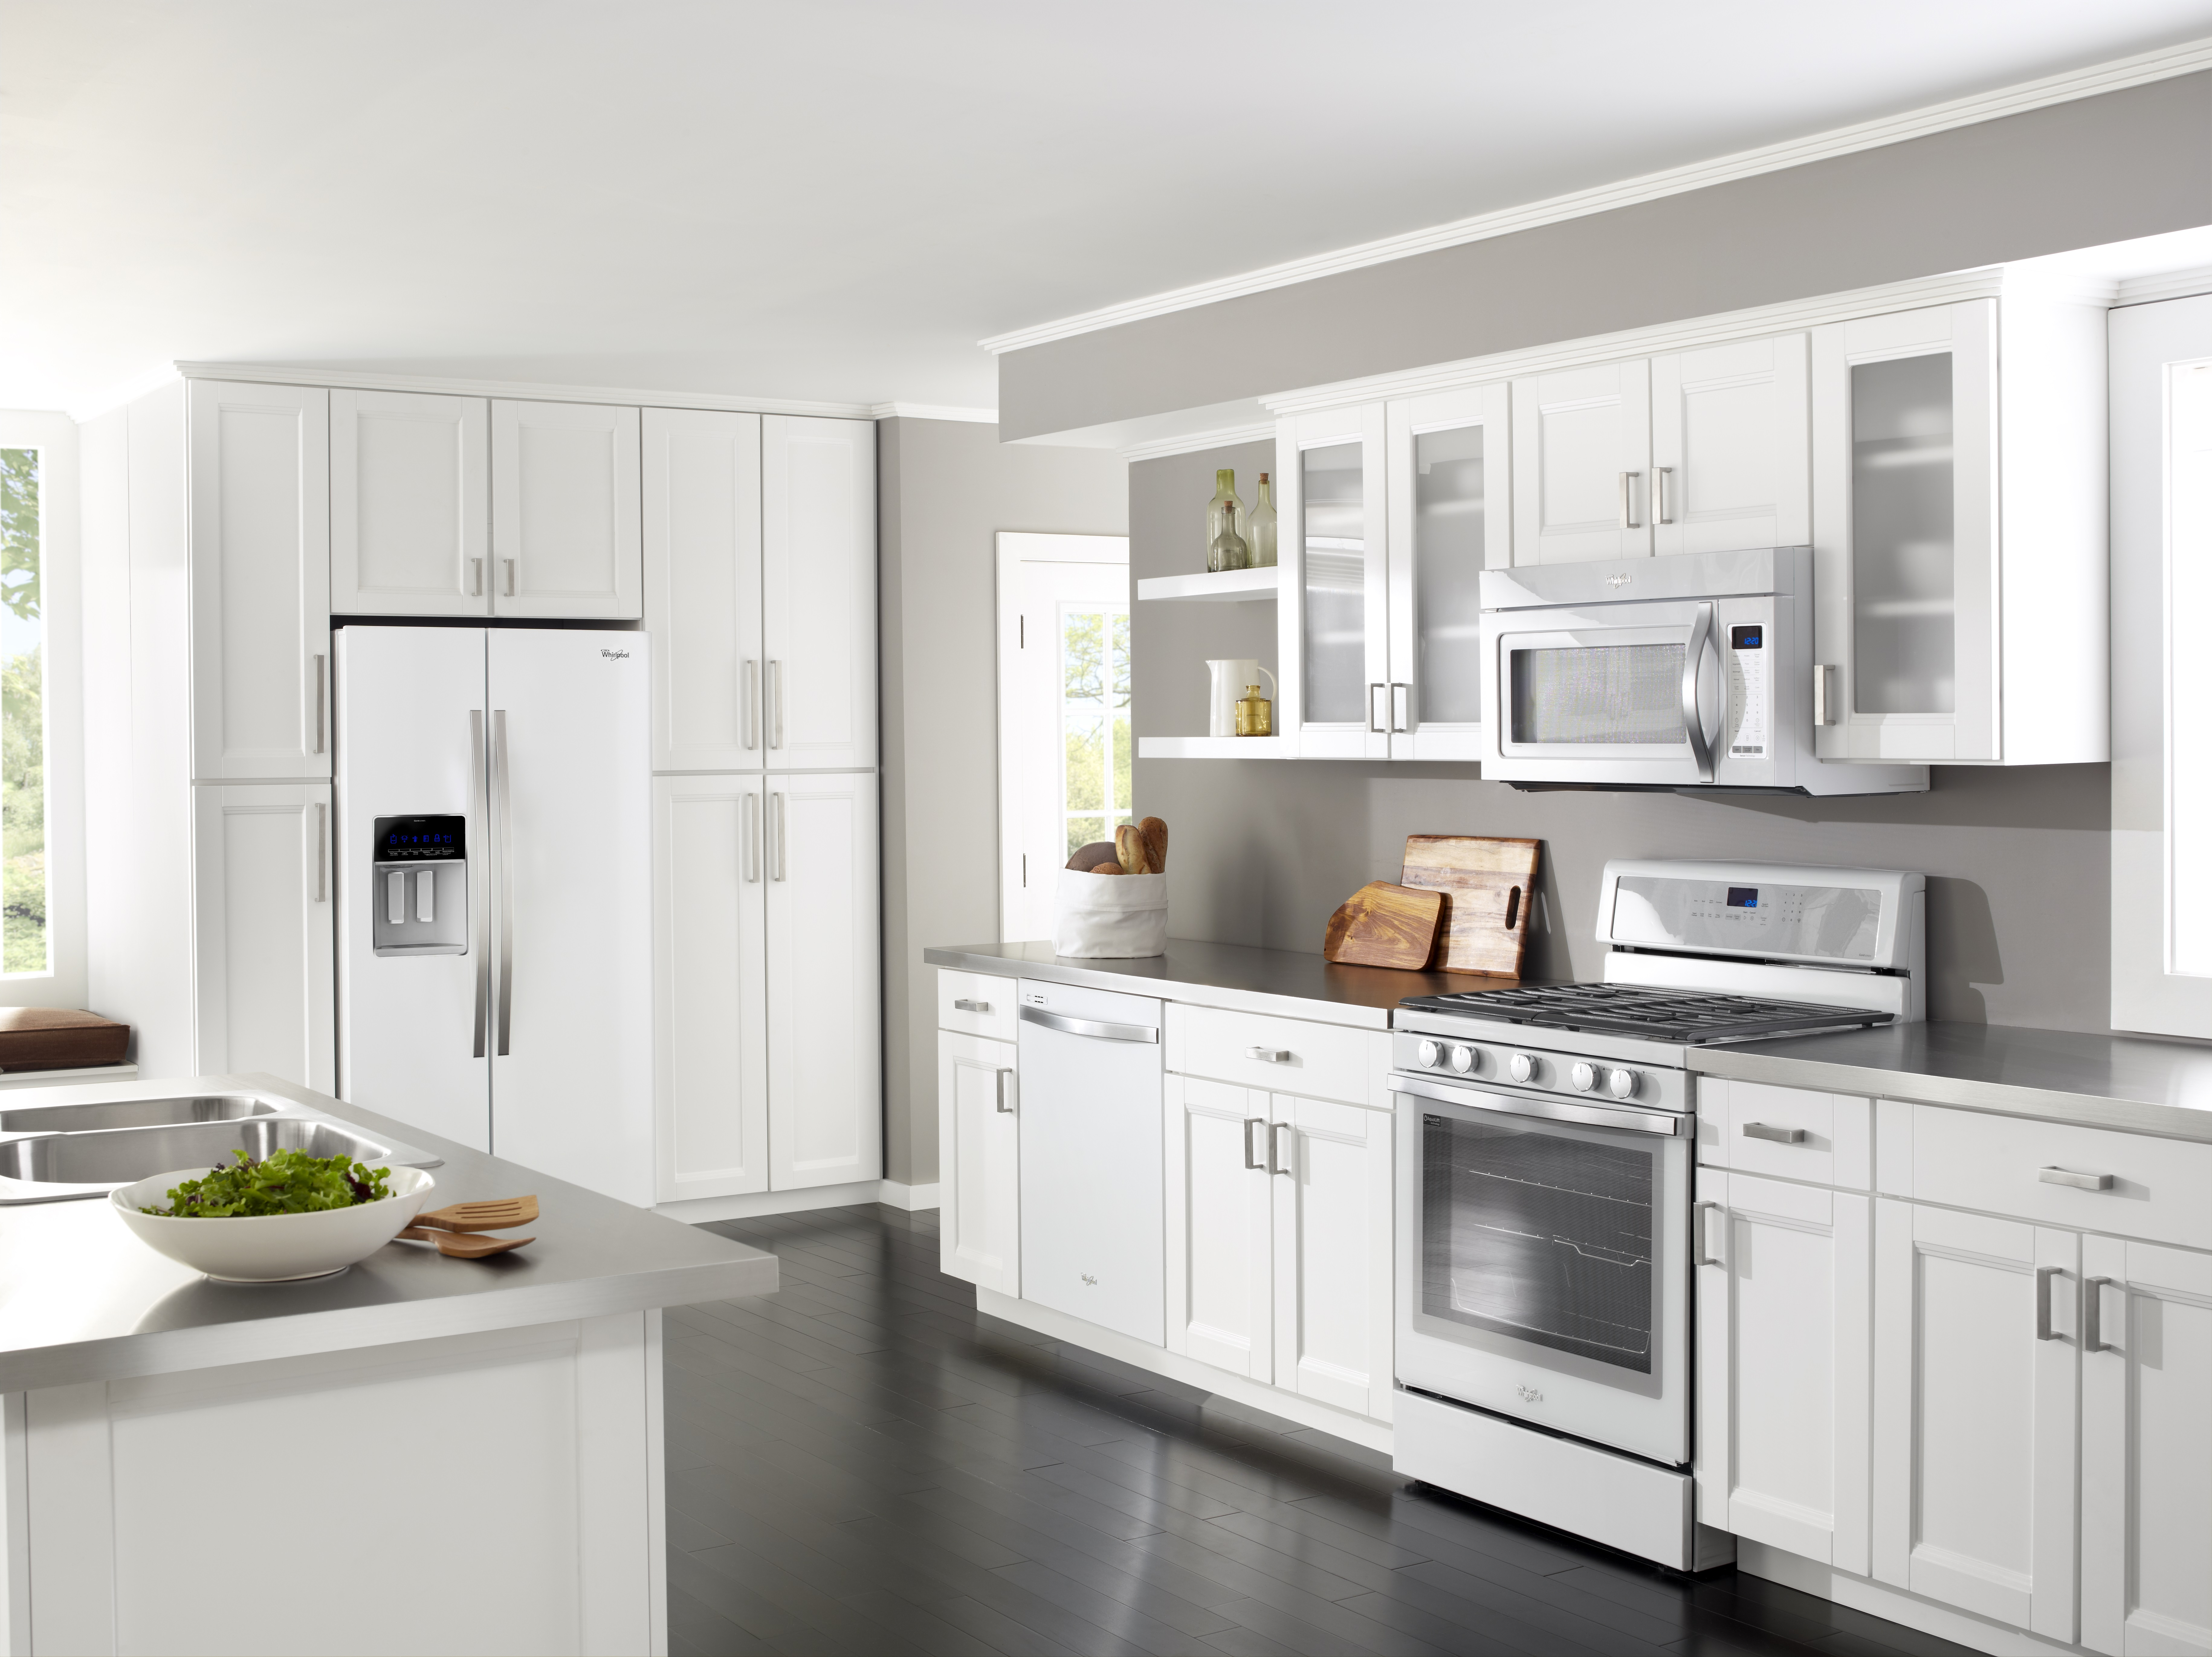 All White Kitchens With White Appliances Getting The Most Our Of Your New Kitchen Appliances